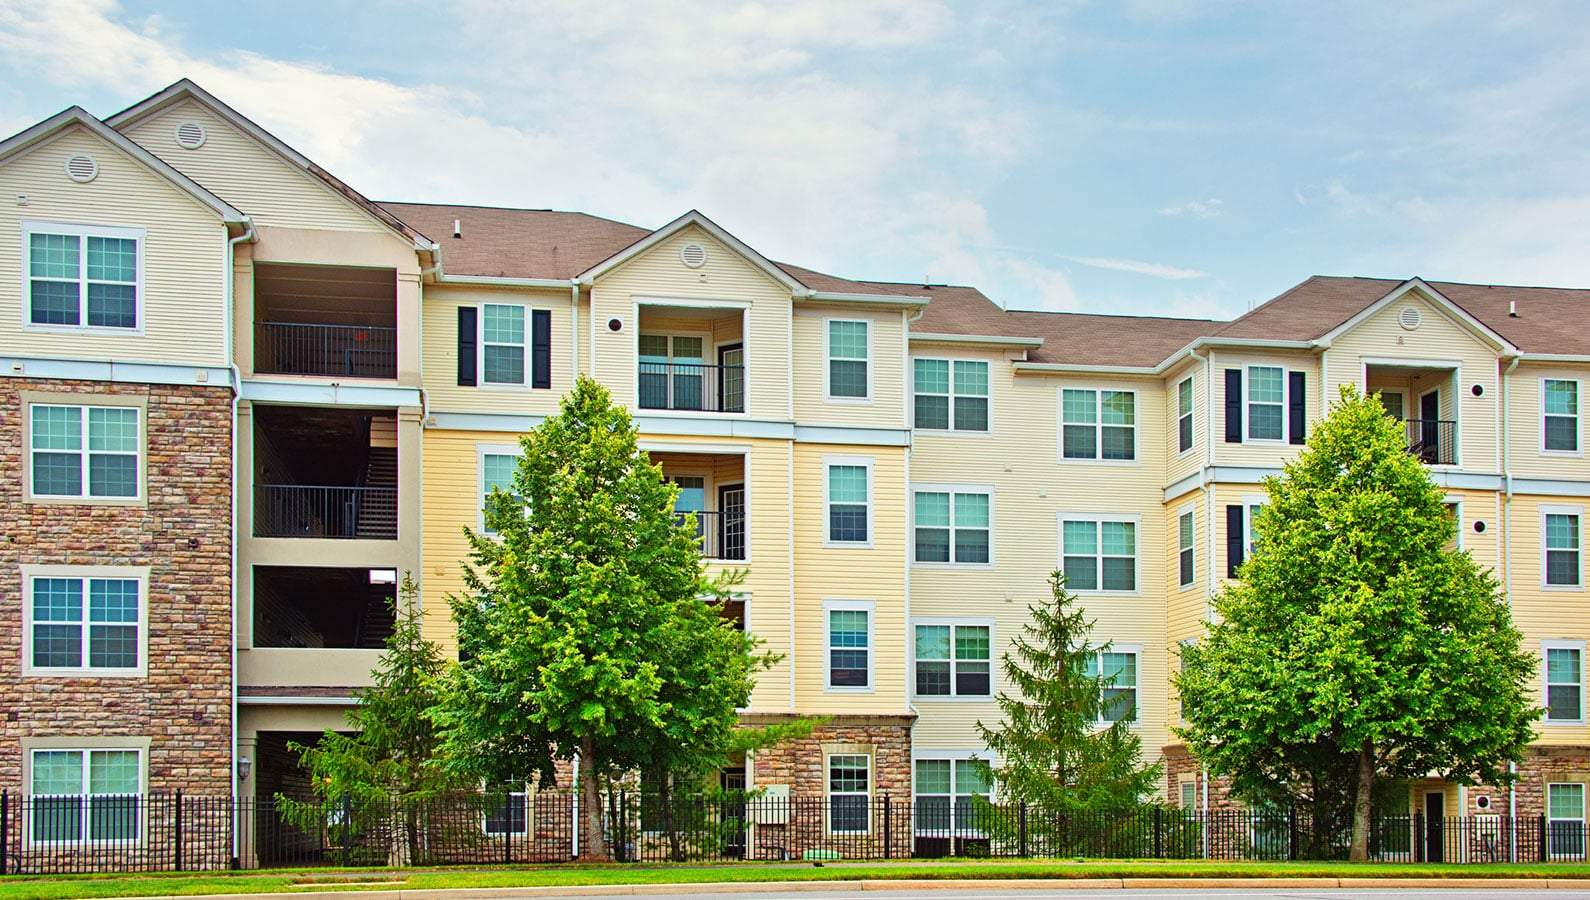 Lower Volatility Investing | Commercial Multifamily Real Estate